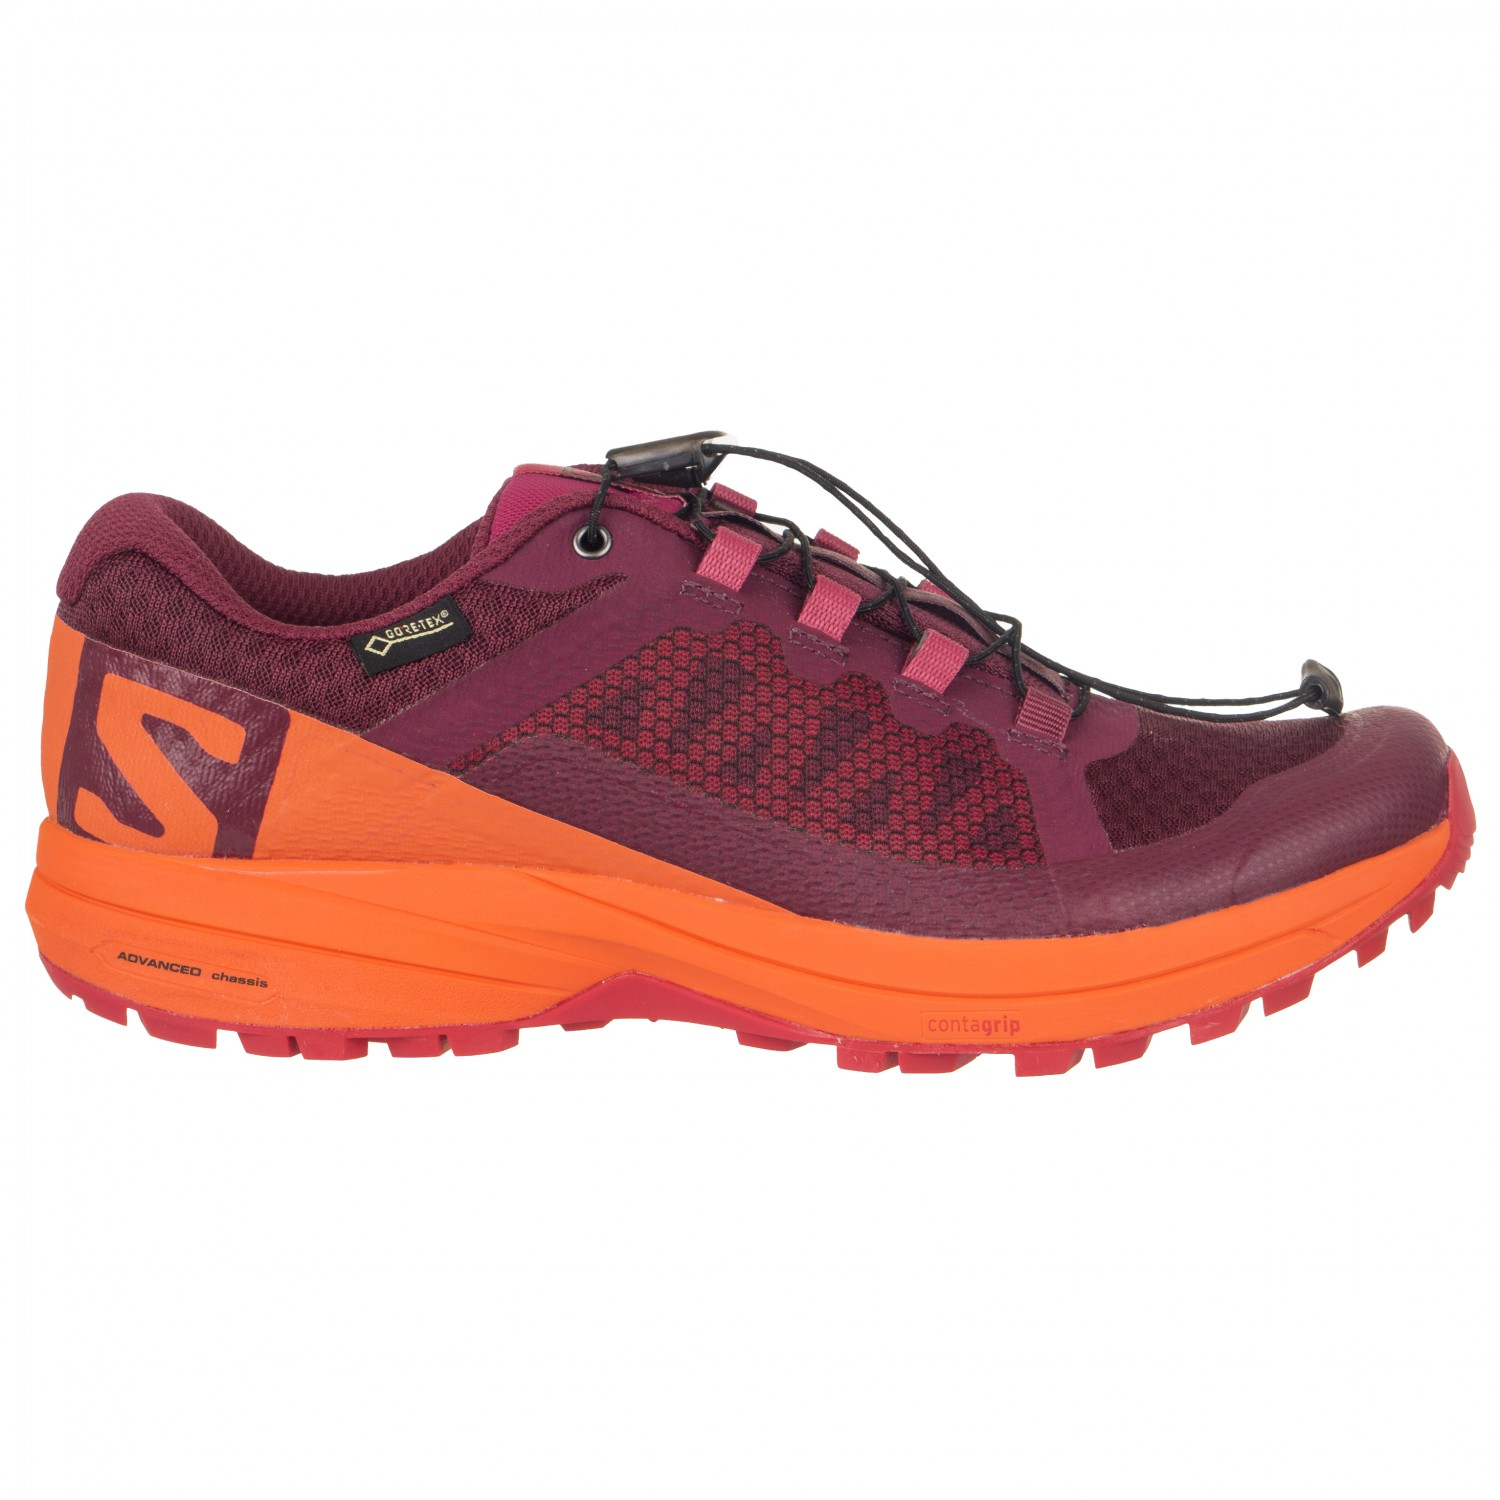 Salomon XA Elevate GTX Running Shoe Women\'s Beet RedNasturtiomVirtual Pink 5